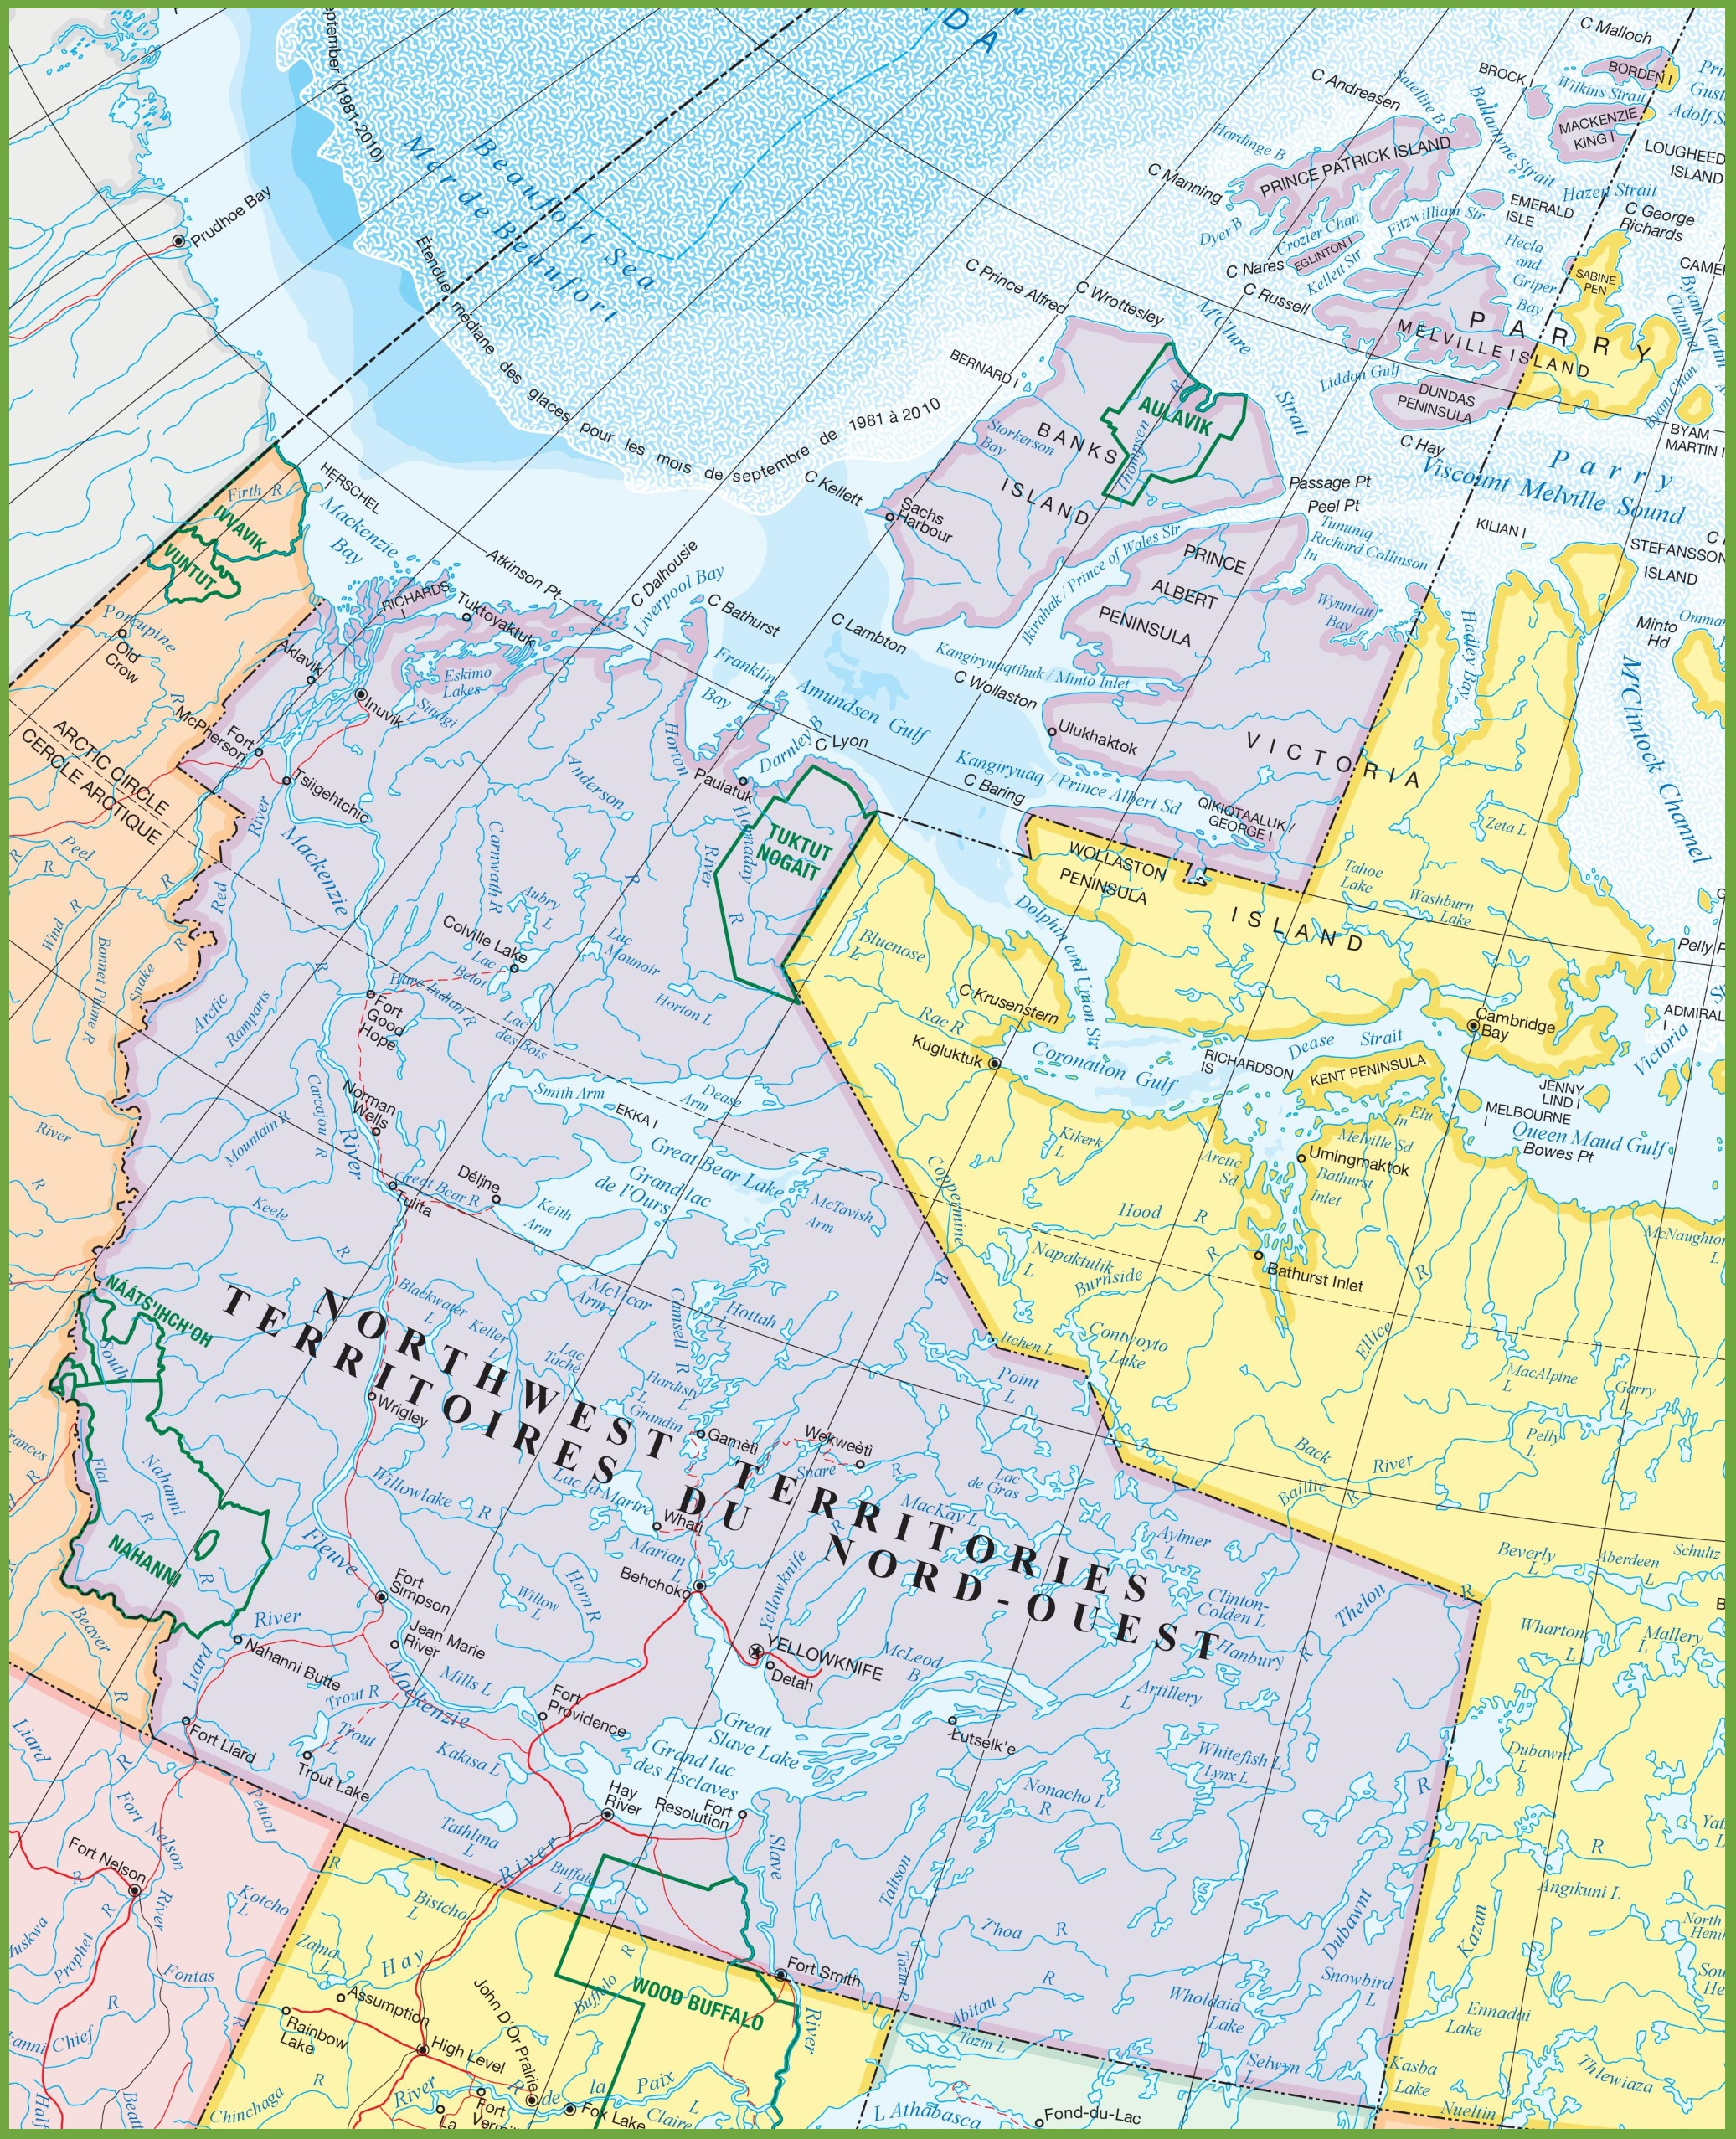 Northwest Territories Canada Map.Large Detailed Map Of Northwest Territories With Cities And Towns